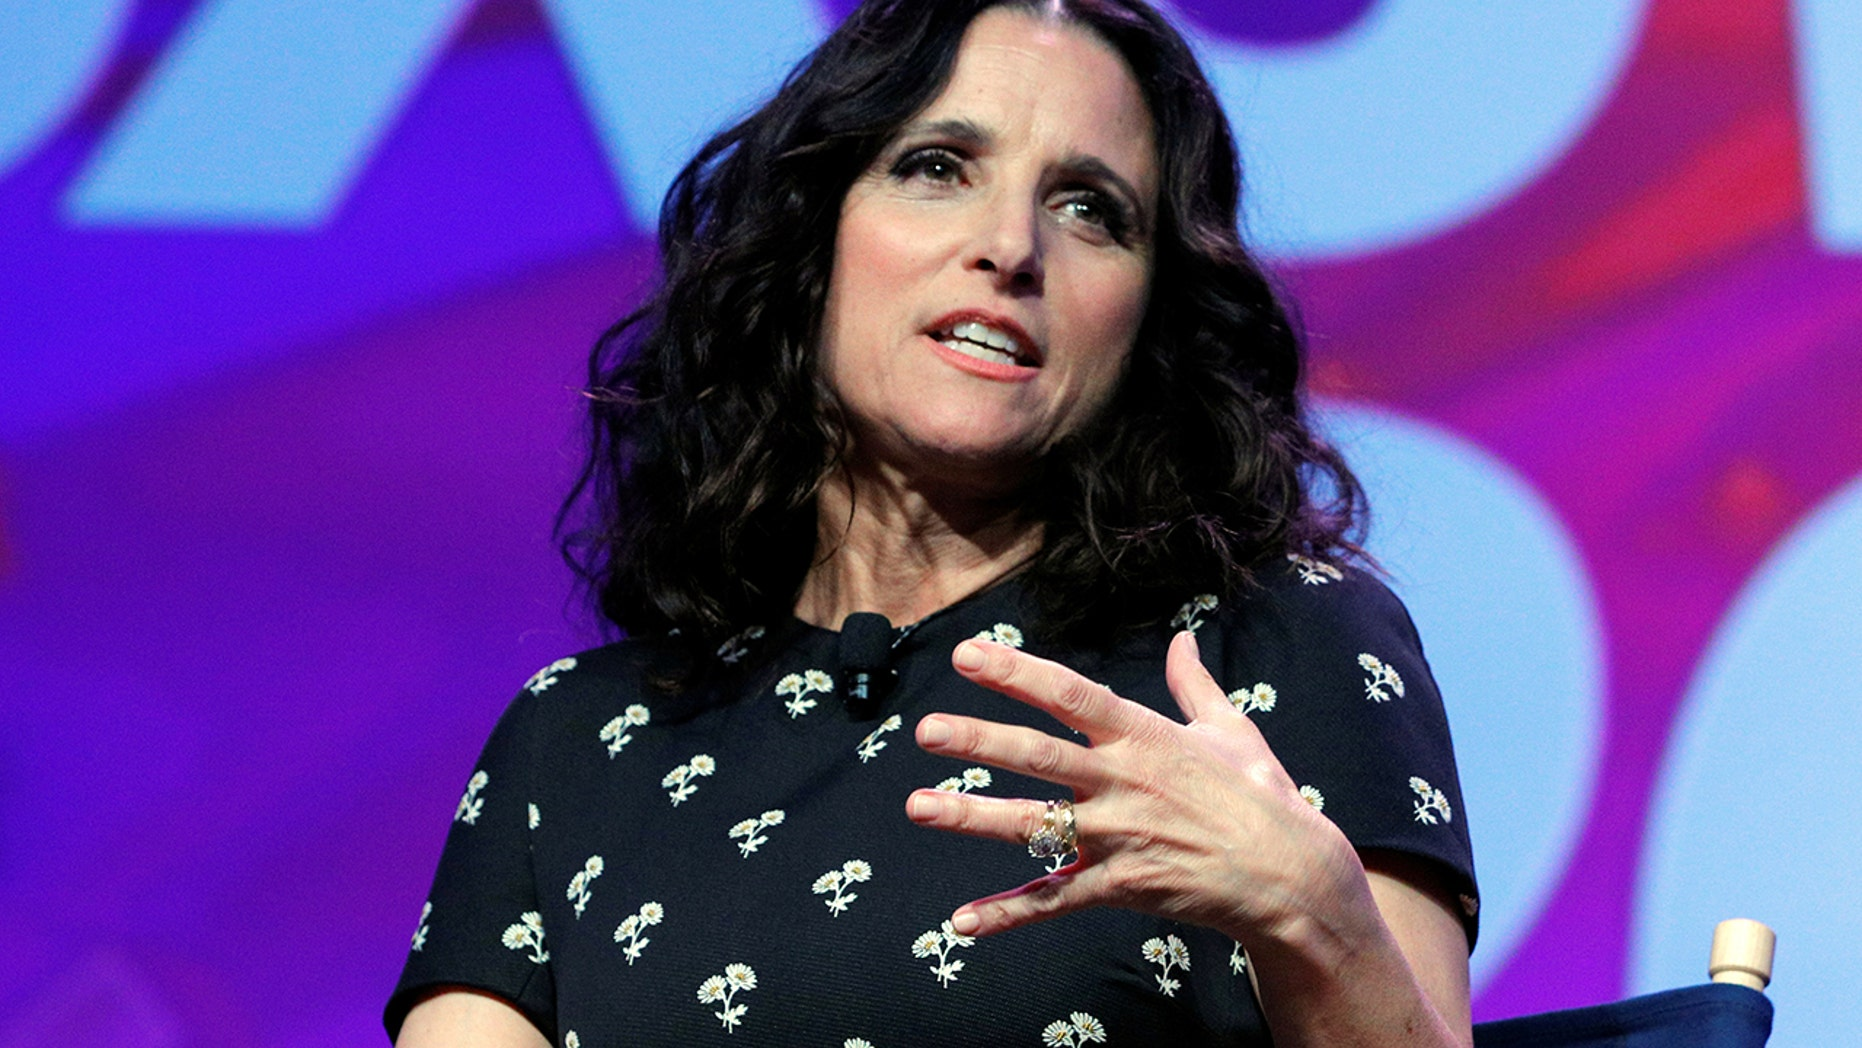 Julia Louis-Dreyfus never considered quitting Veep, despite her cancer diagnosis